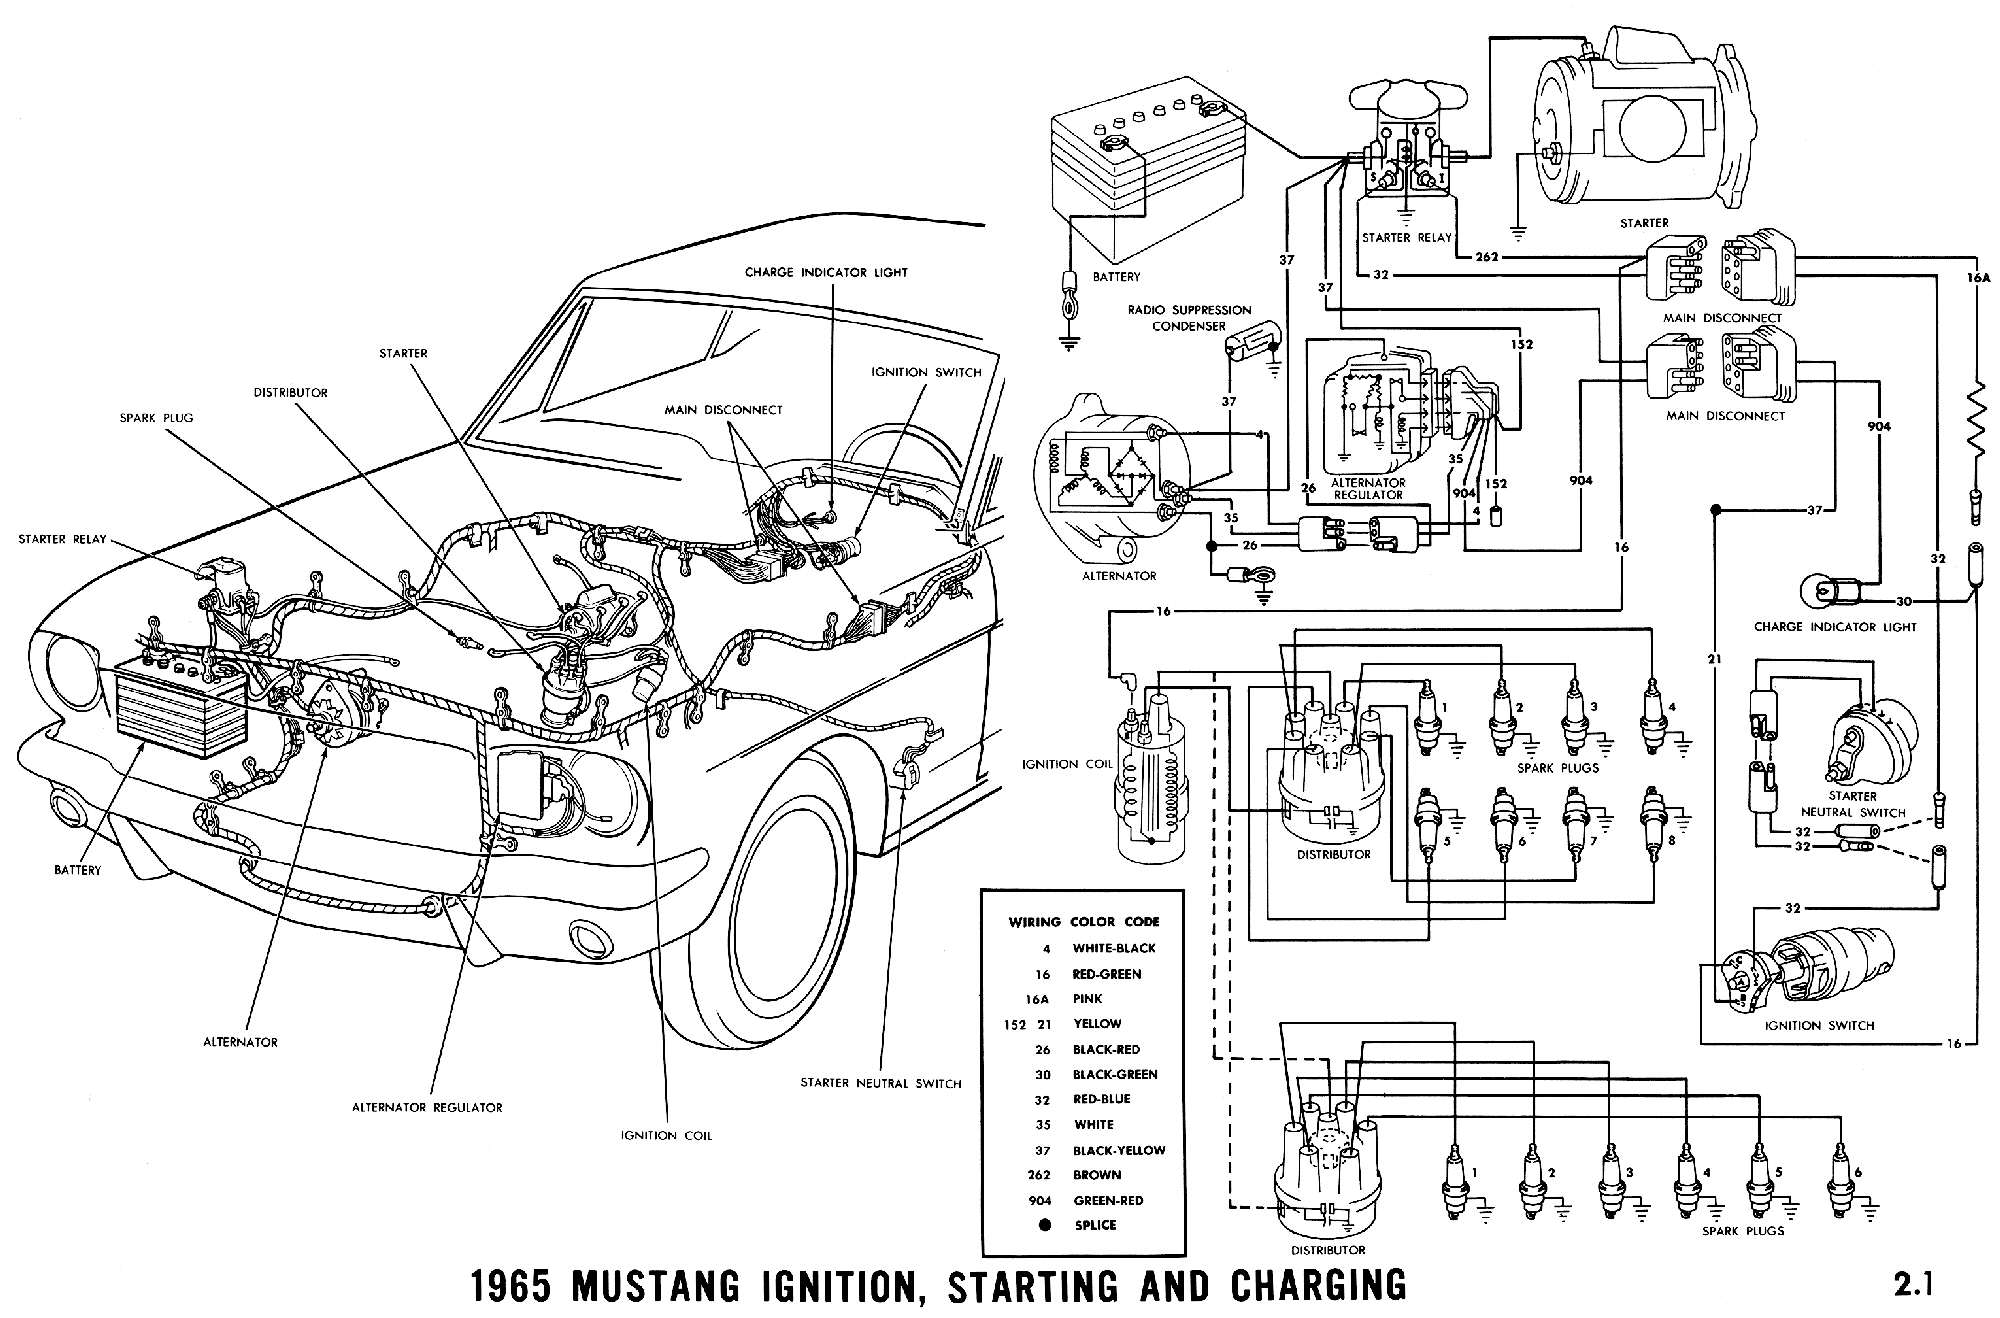 1965c 1965 mustang wiring diagrams average joe restoration on 65 mustang engine wiring diagram